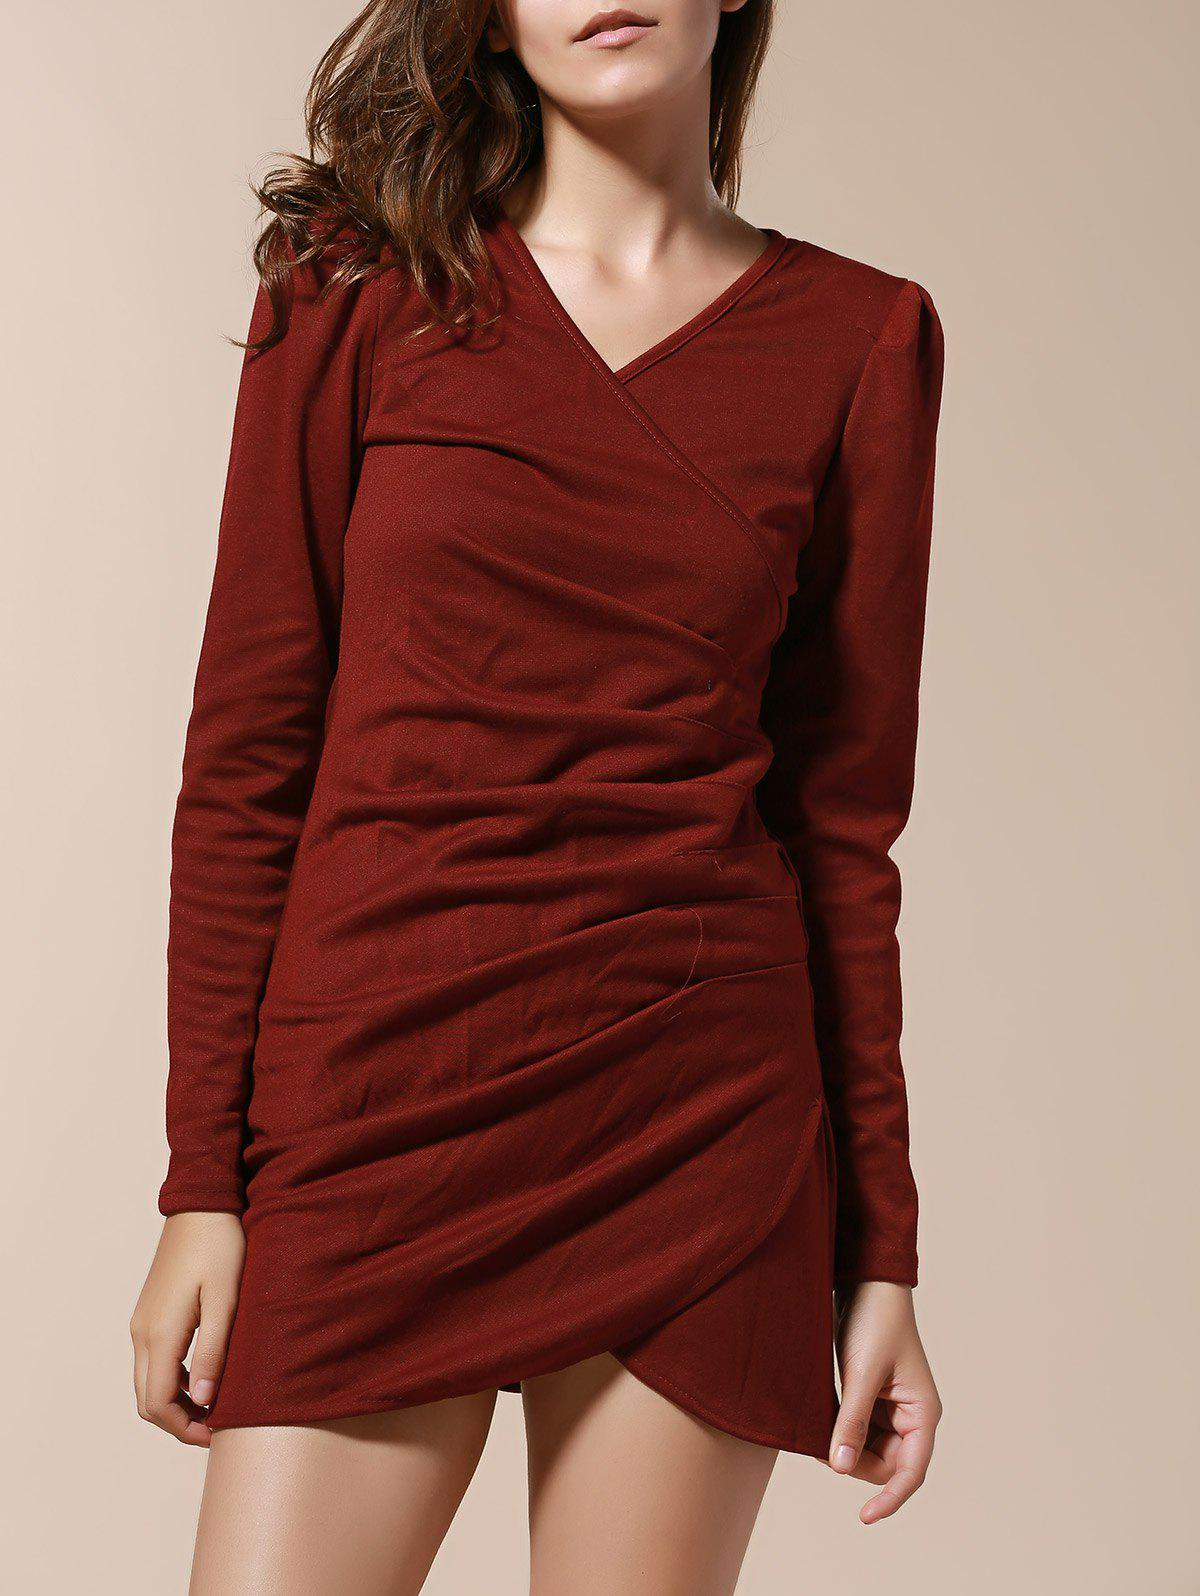 Elegant Style V-Neck Side Pleated Design Long Sleeve Cotton Blend Women's Dress - WINE RED XL